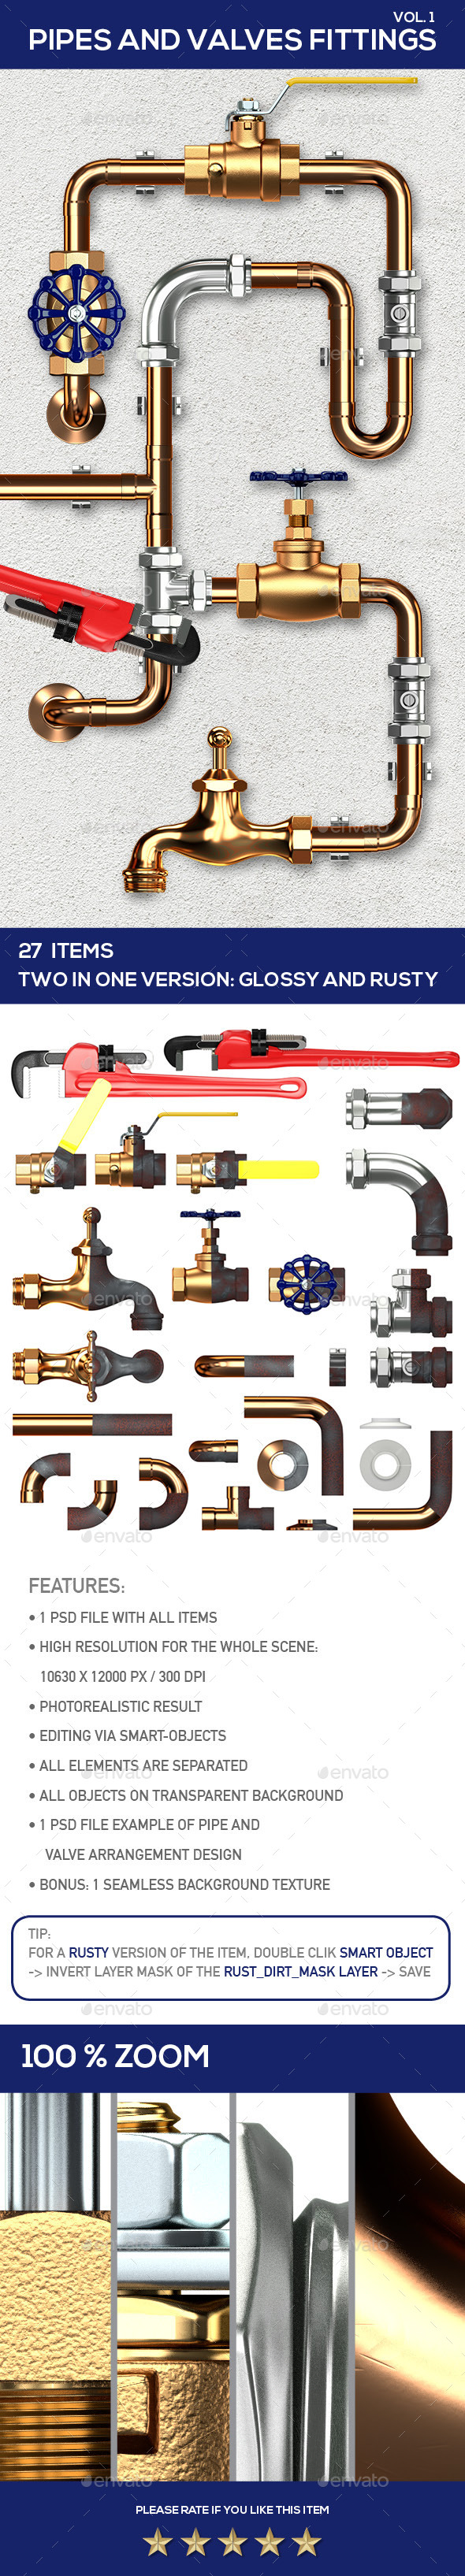 Pipes and Valves Fittings V1 - Miscellaneous 3D Renders